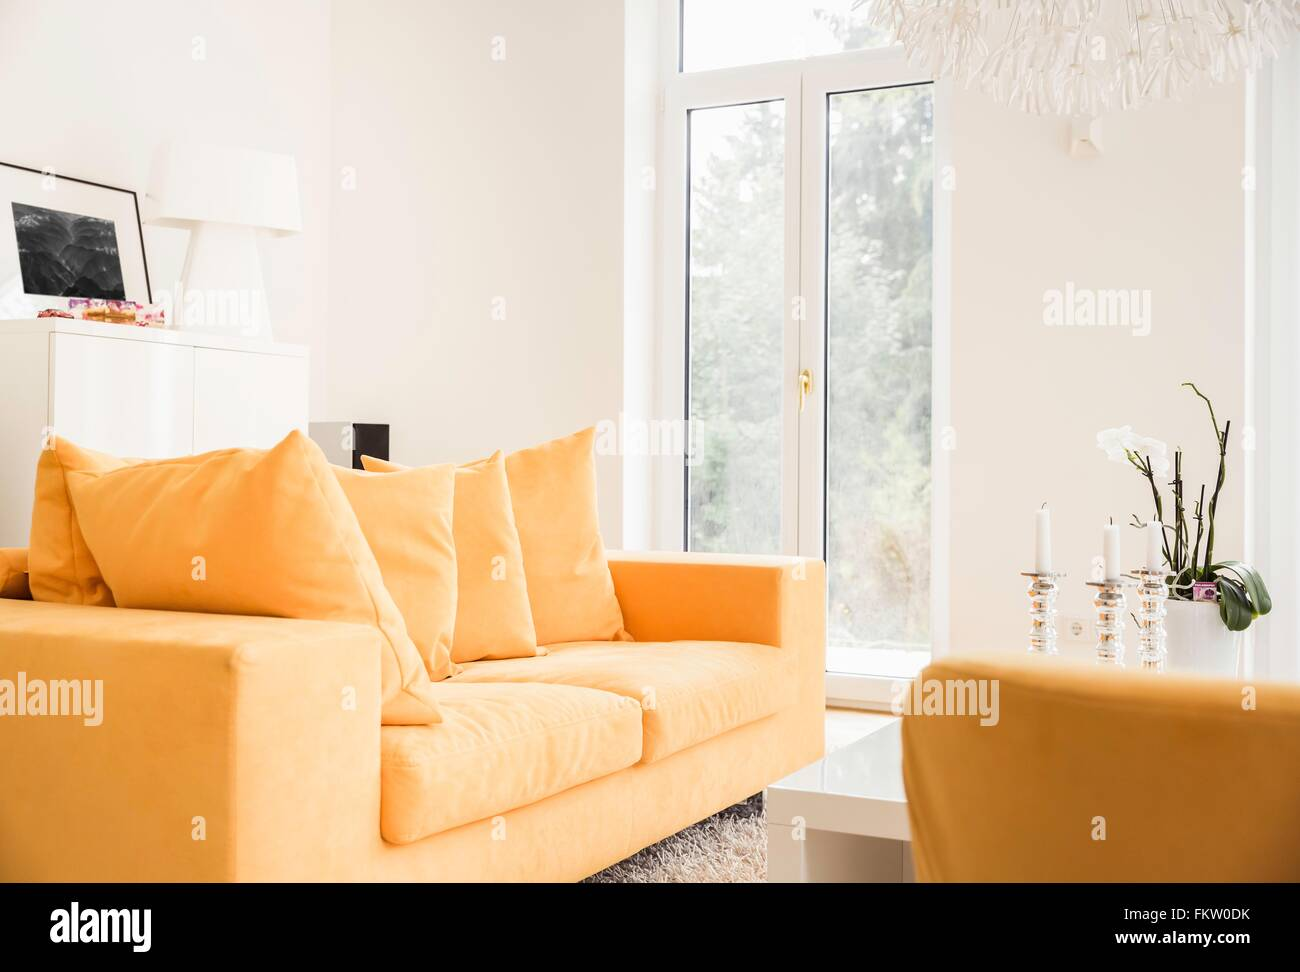 Stylish living room with yellow sofas and patio door - Stock Image